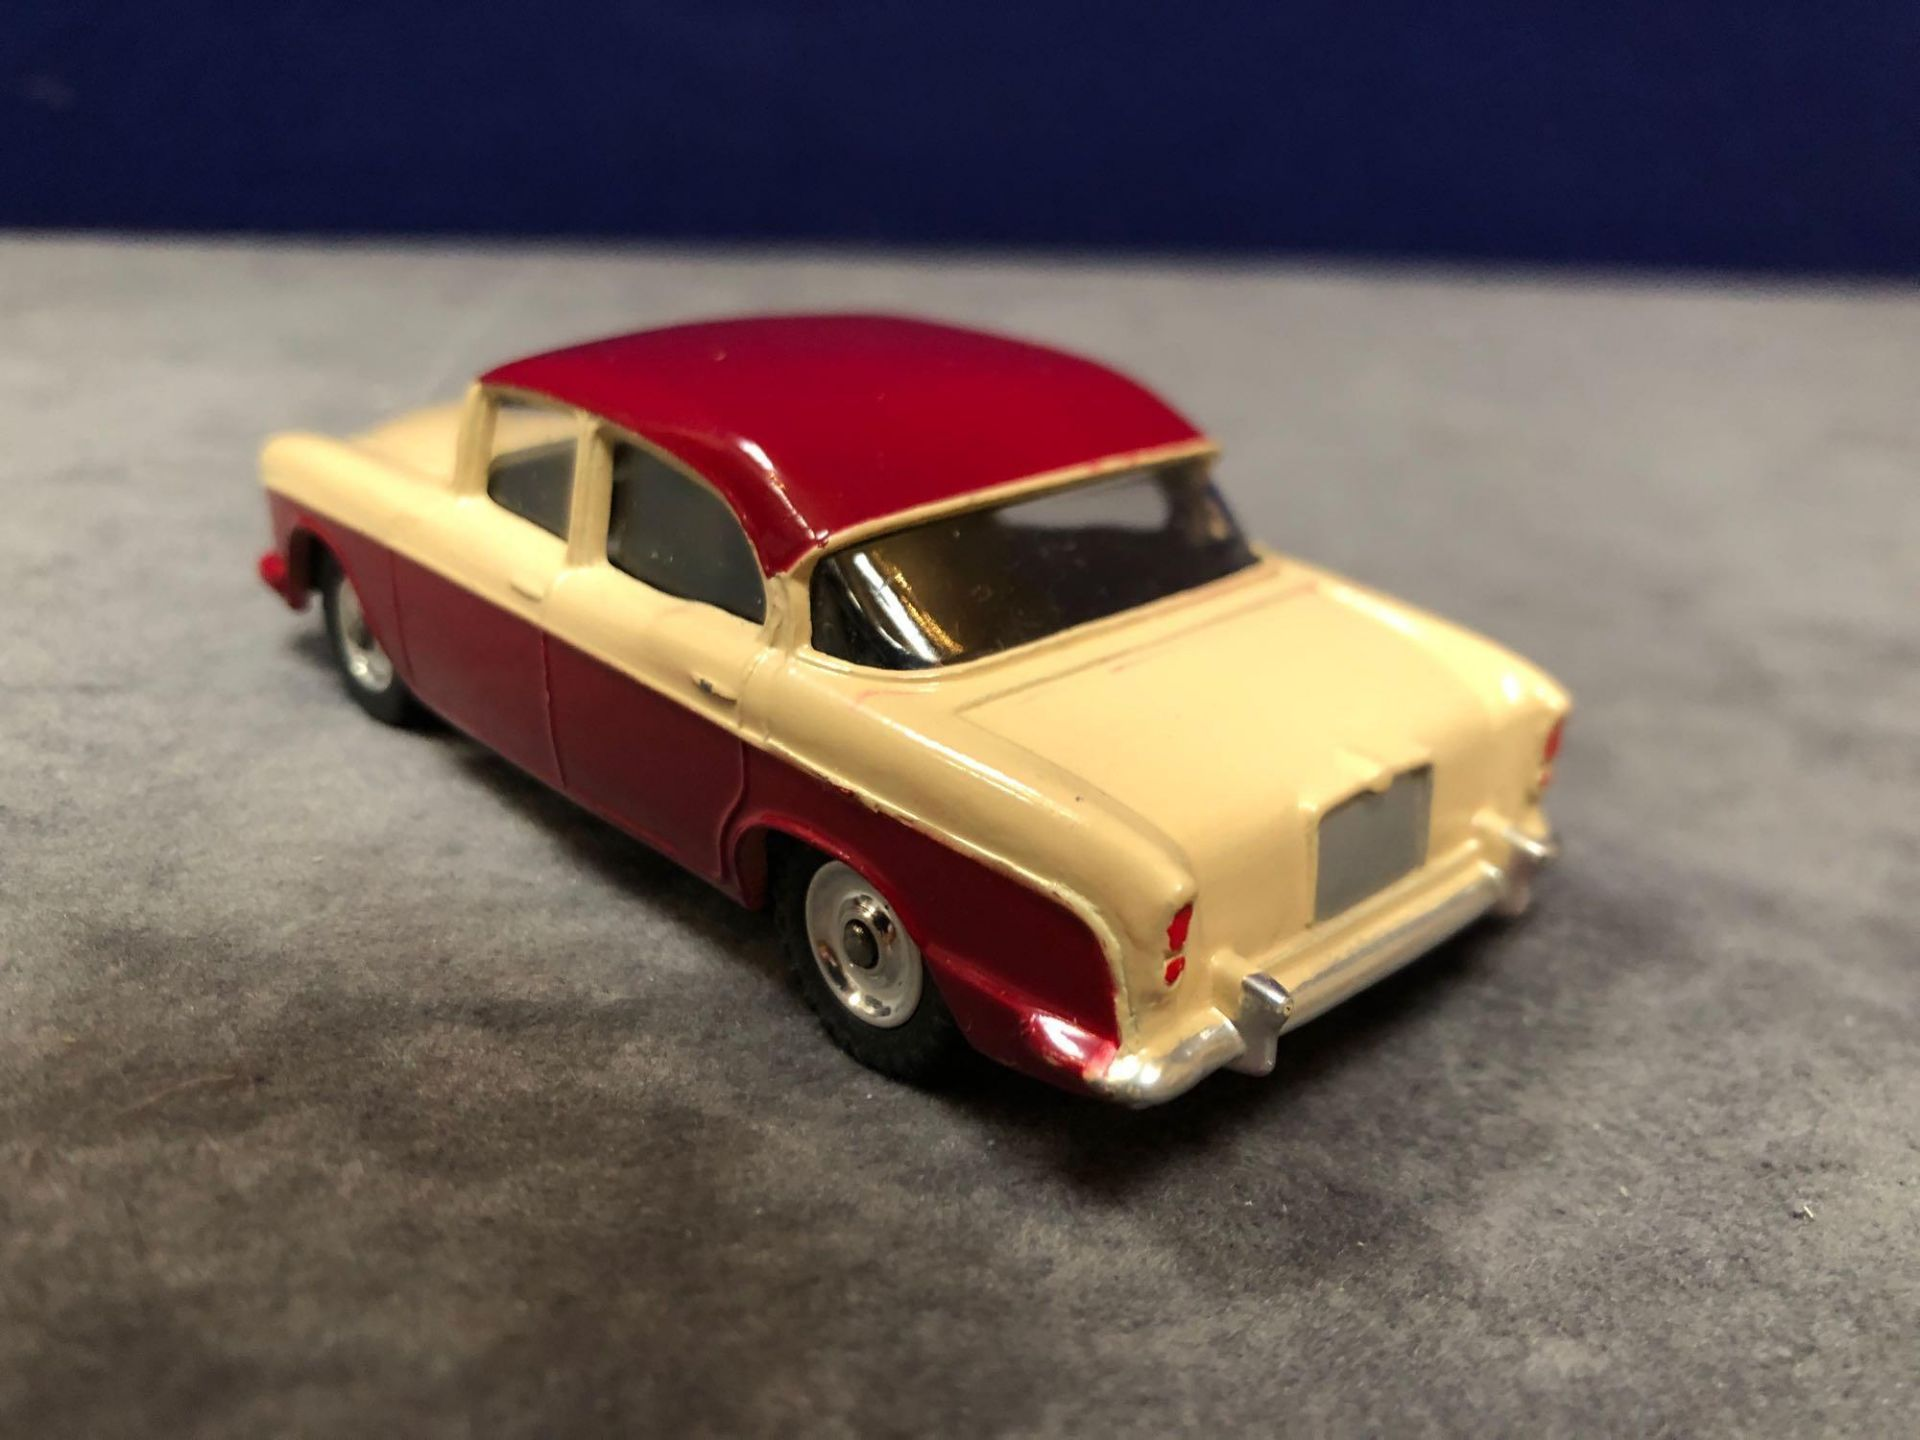 Dinky #165 Humber Hawk Maroon/Fawn - Spun Hubs With Box 1959-1963 - Image 3 of 4